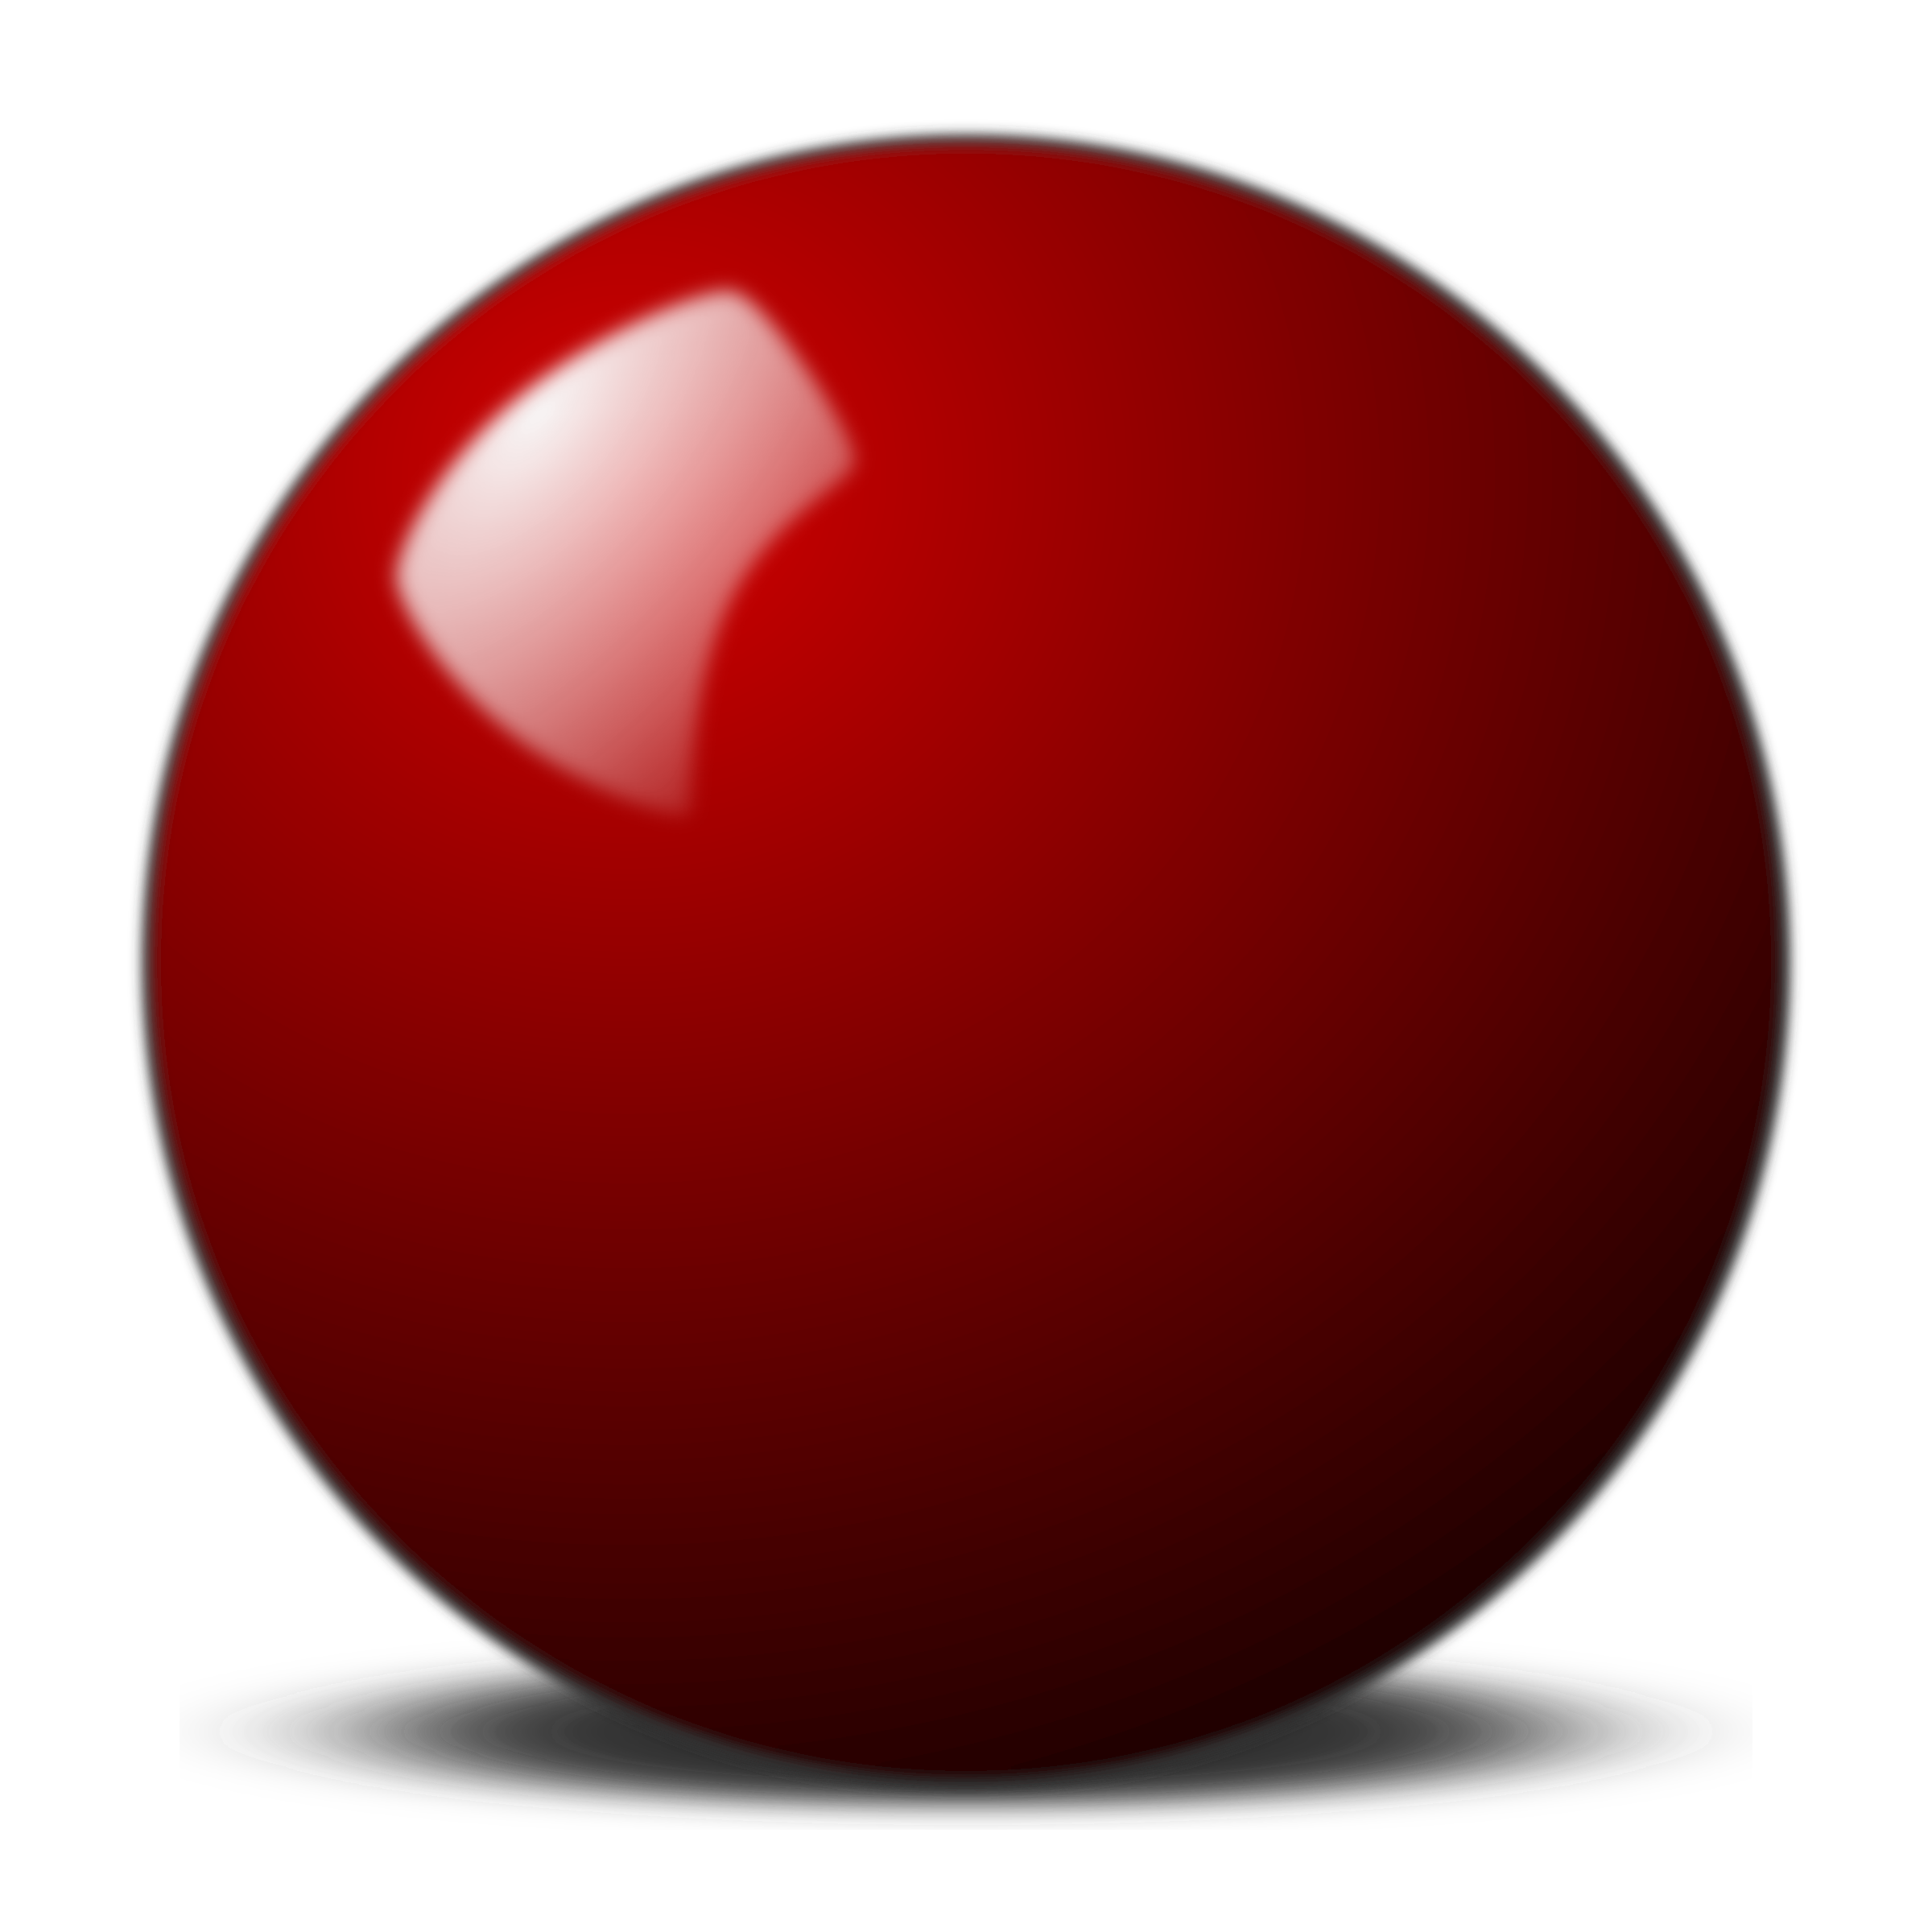 Red ball png. Snooker icons free and